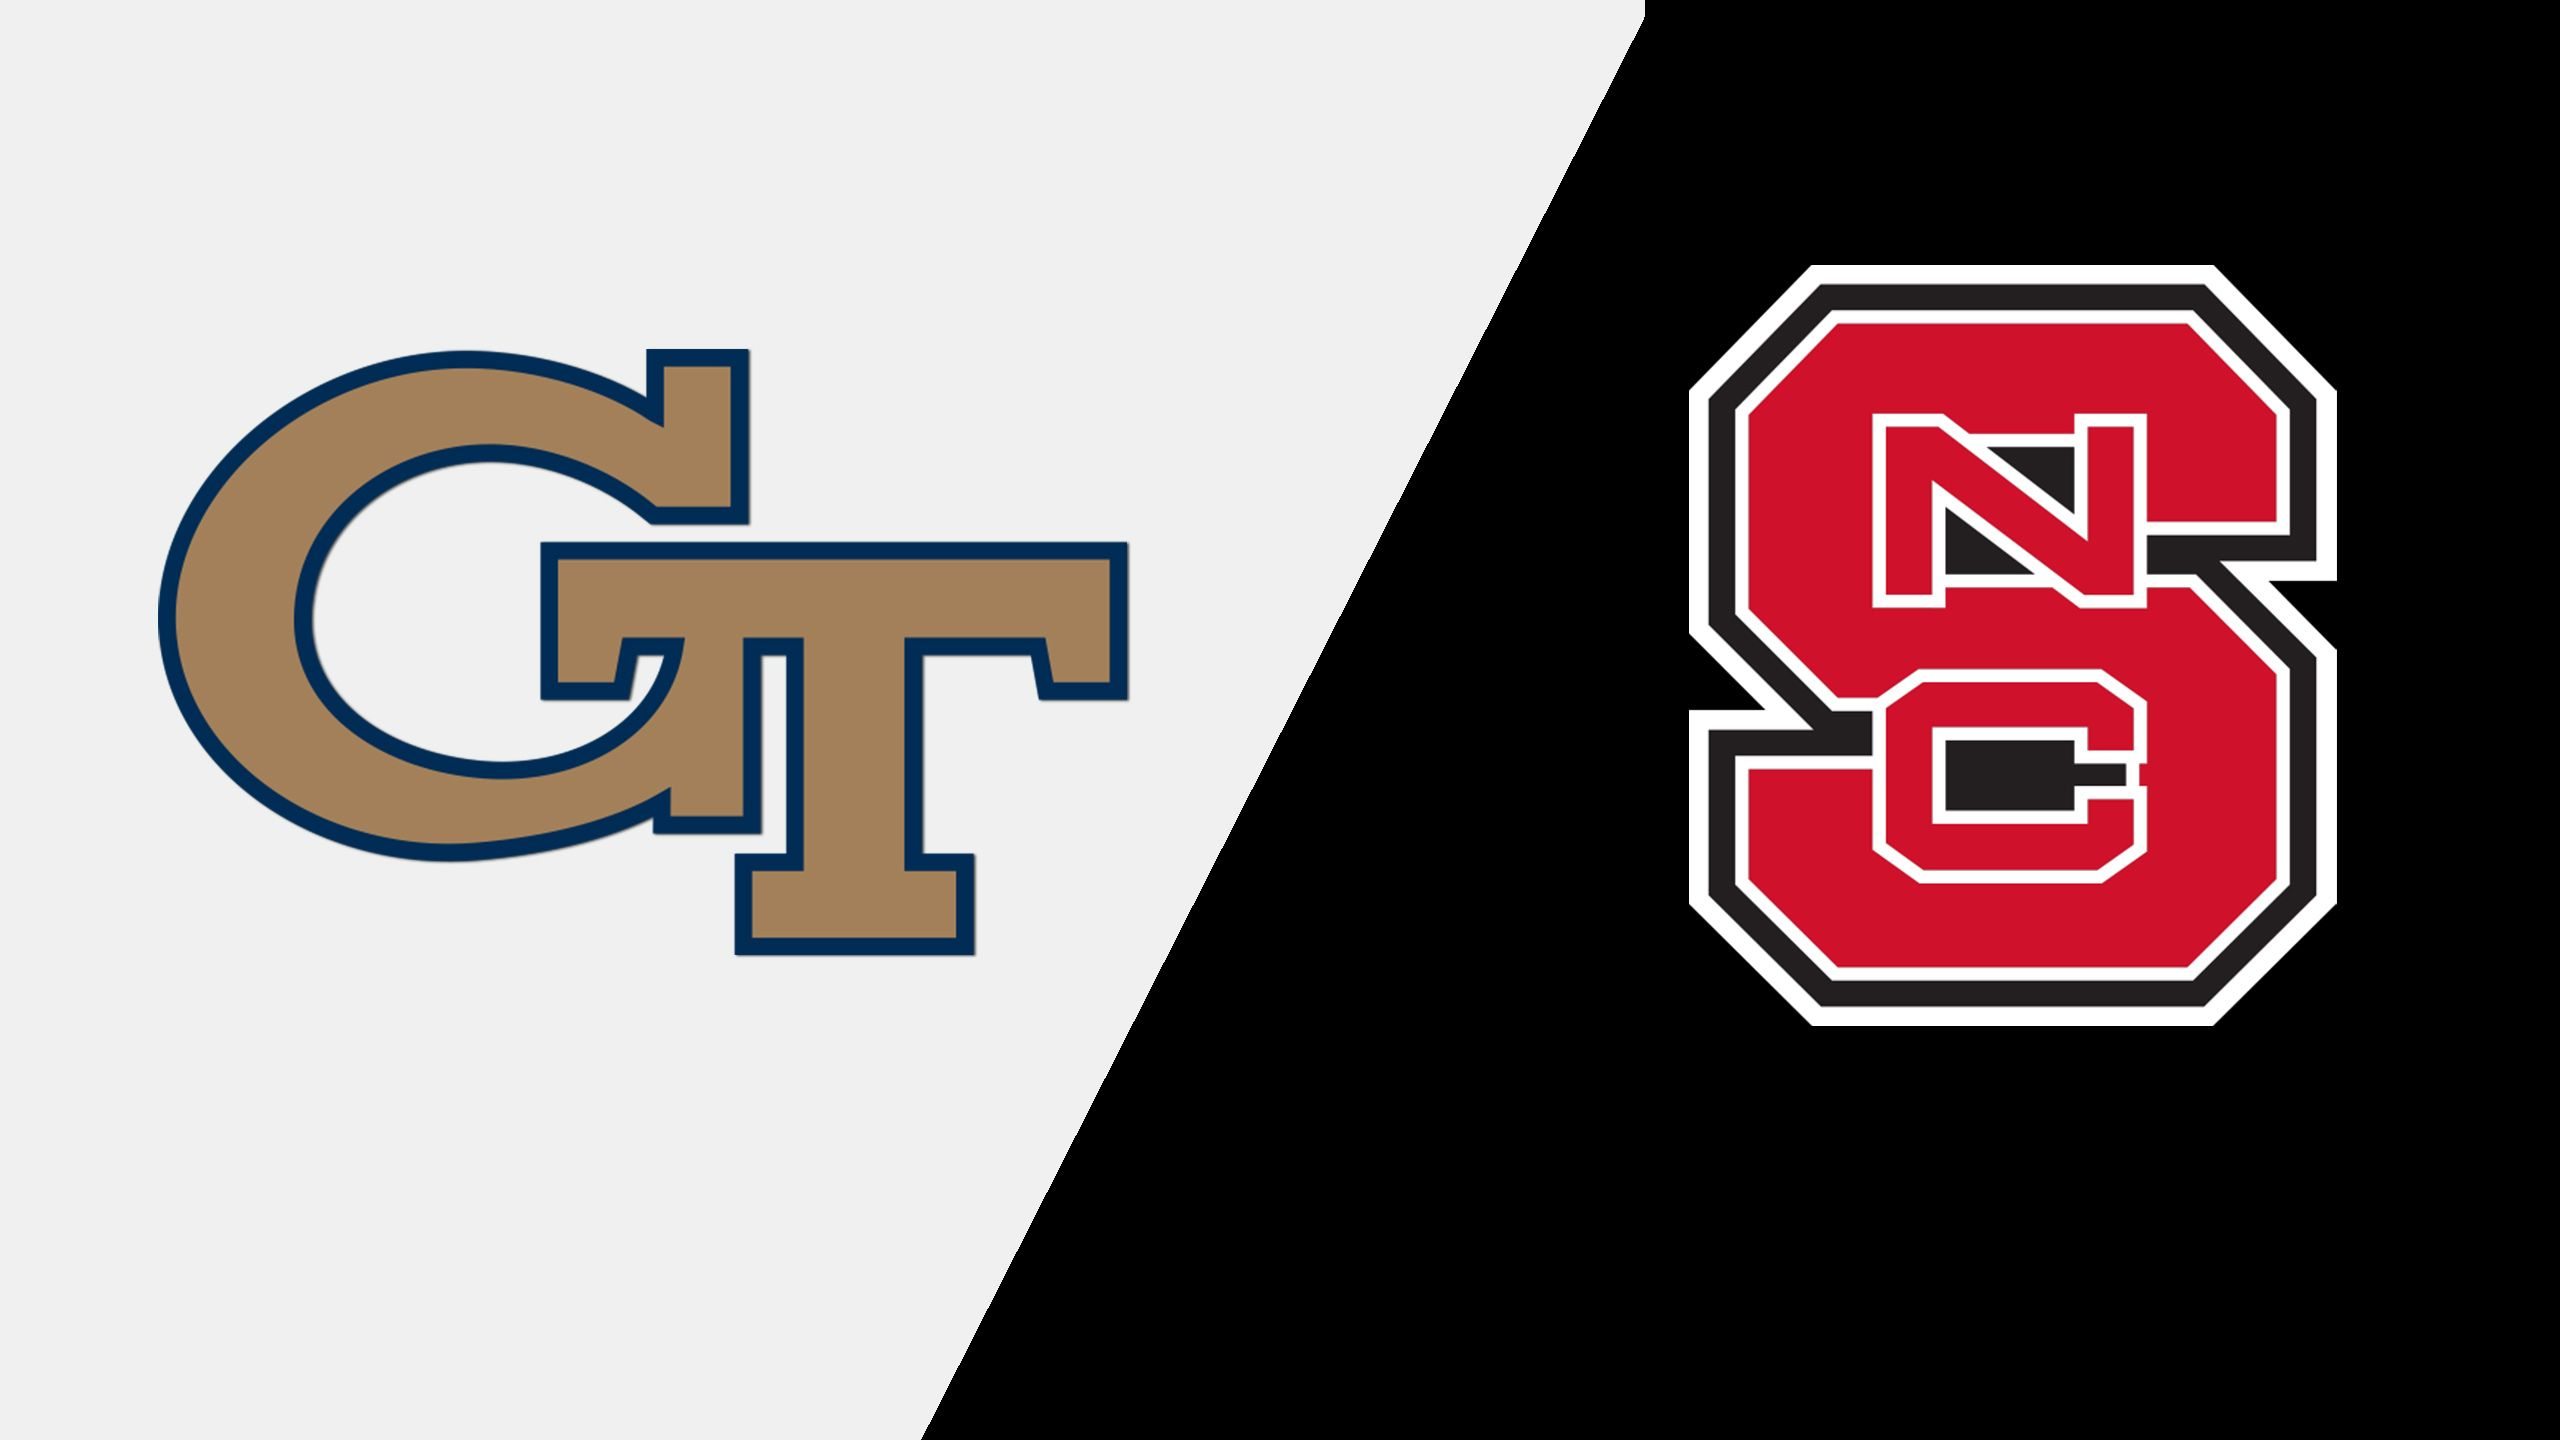 Georgia Tech vs. #10 NC State (Baseball)